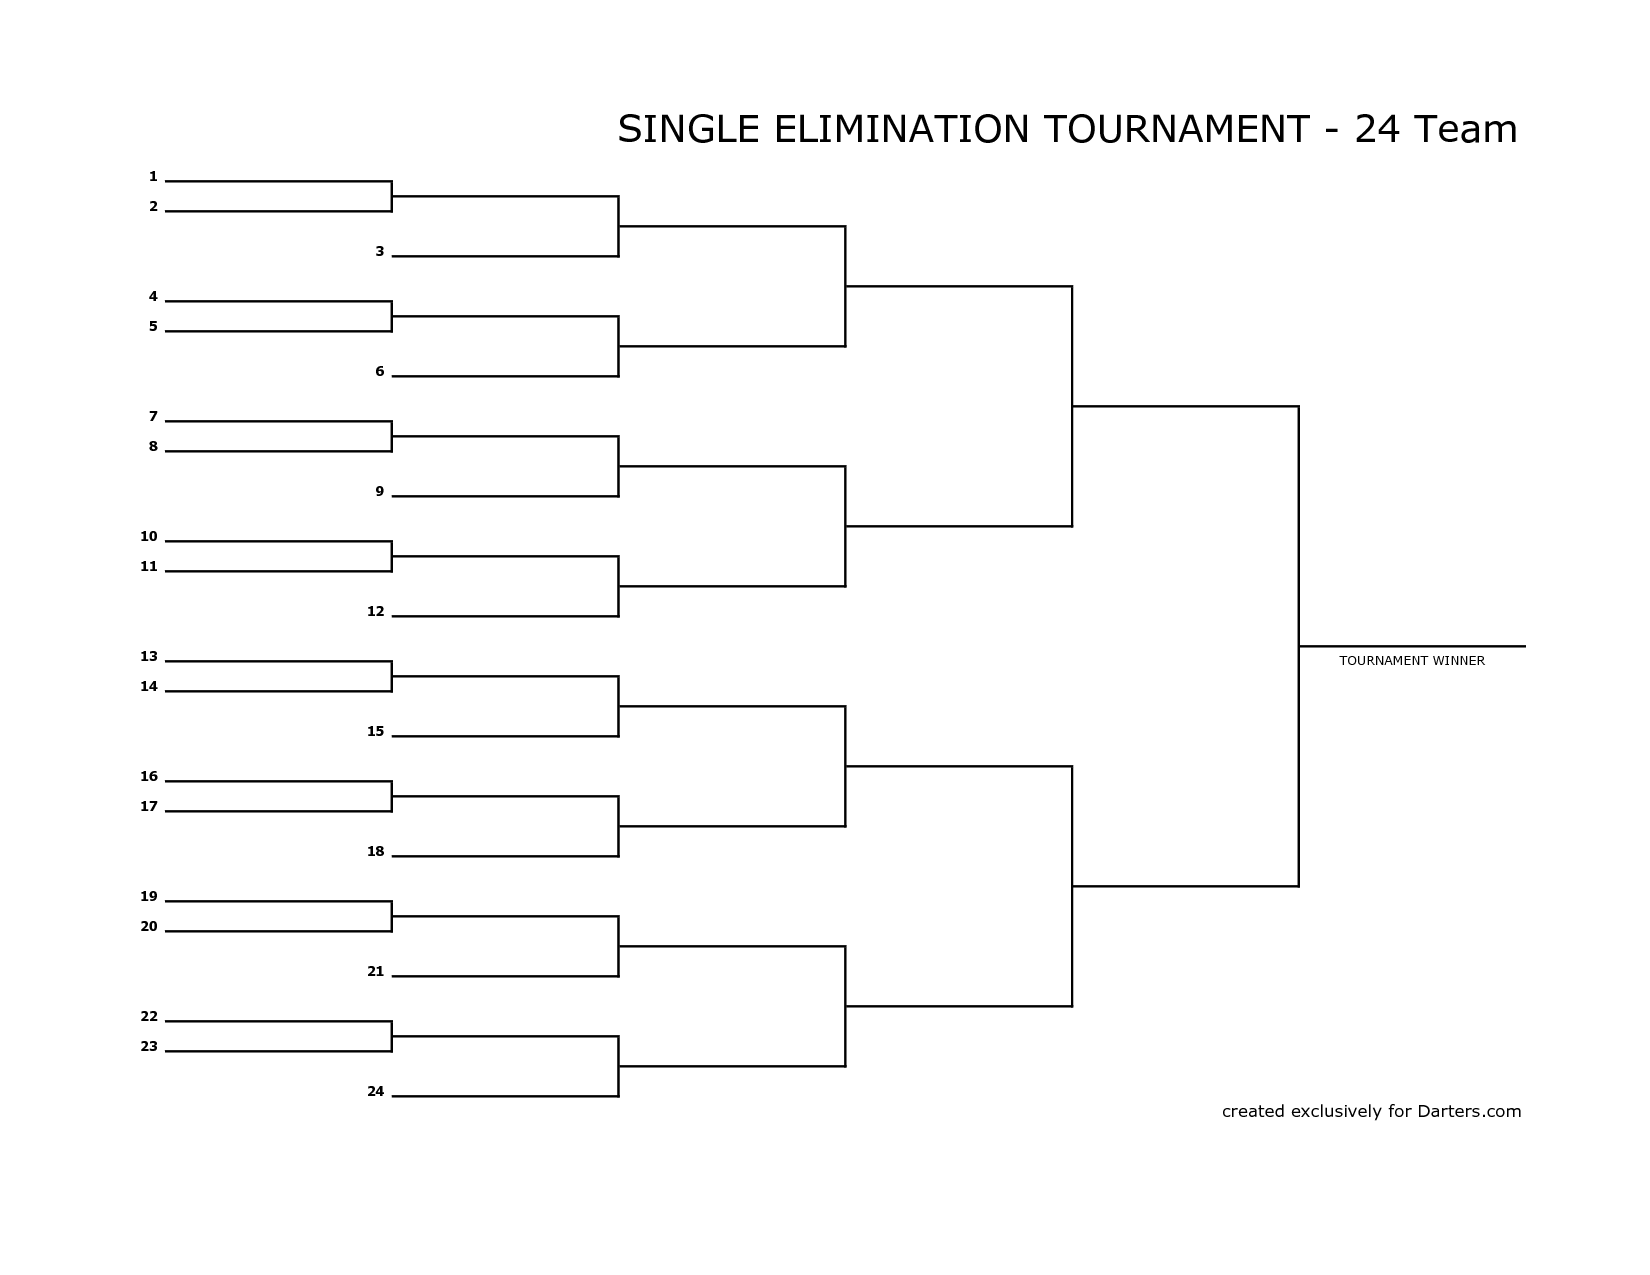 Double Elimination and Single Elimination Formats